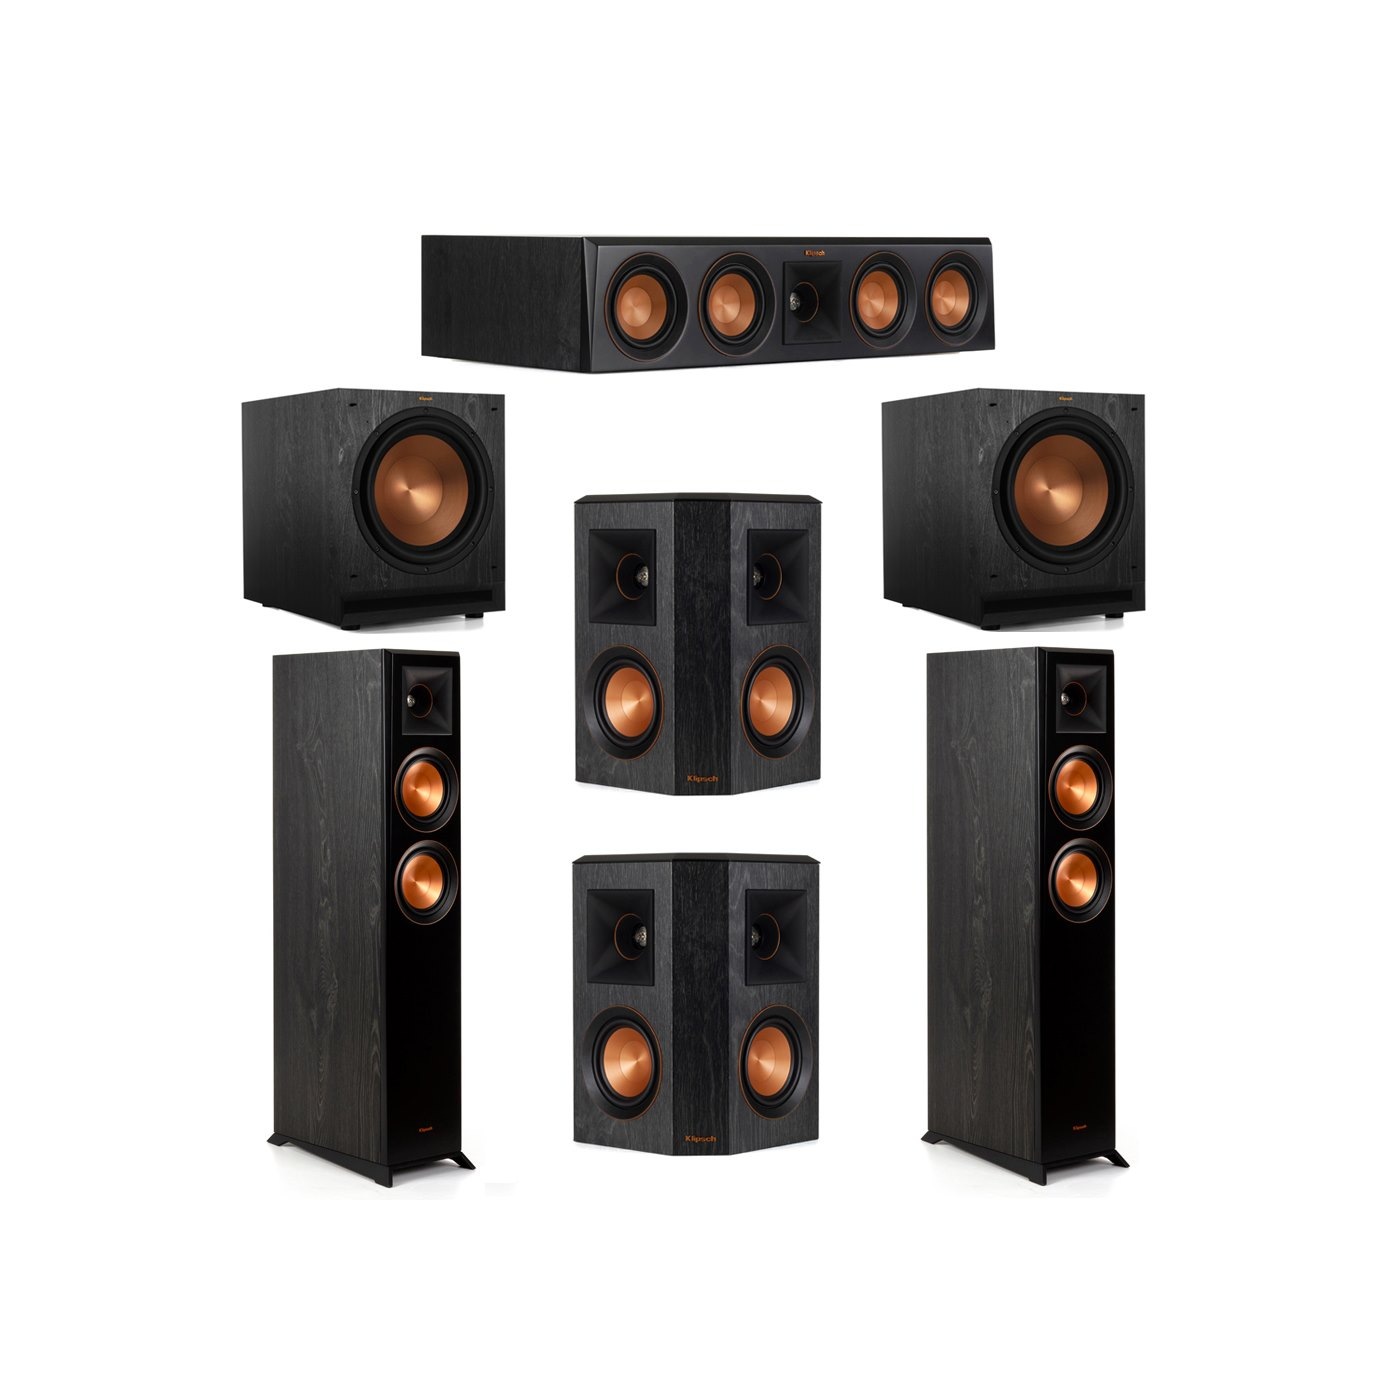 Klipsch 5.2 System with 2 RP-5000F Floorstanding Speakers, 1 Klipsch RP-404C Center Speaker, 2 Klipsch RP-402S Surround Speakers, 2 Klipsch SPL-120 Subwoofers